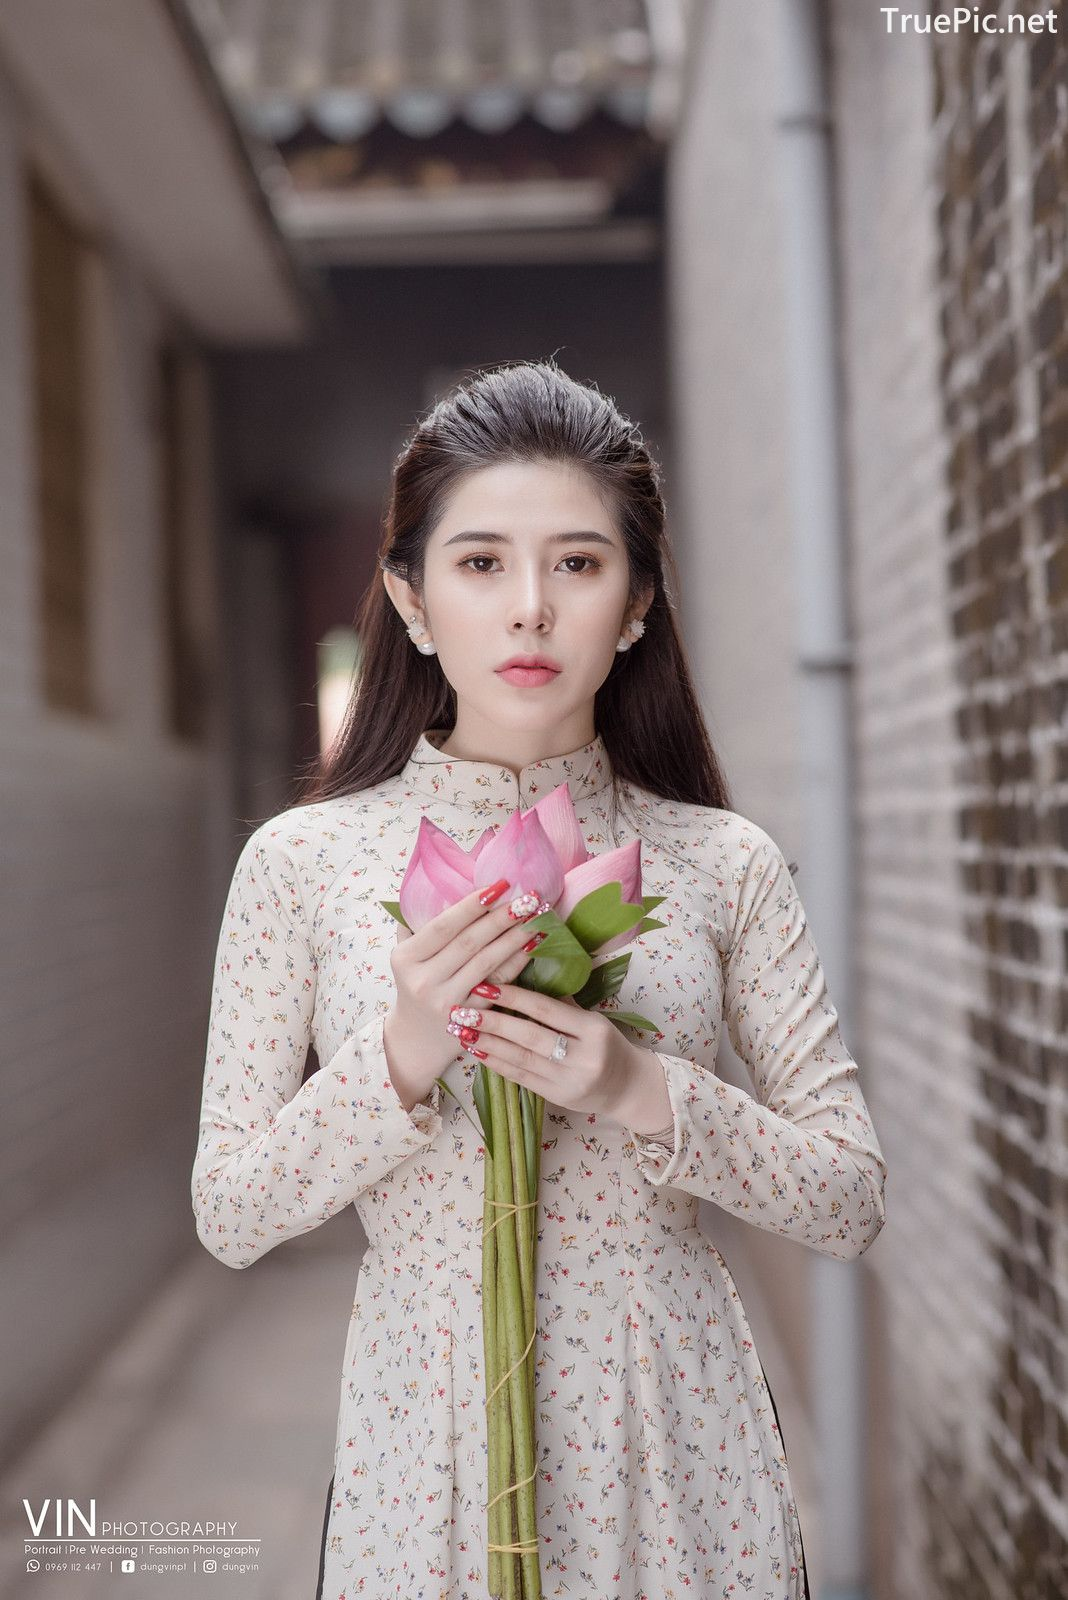 The Beauty of Vietnamese Girls with Traditional Dress (Ao